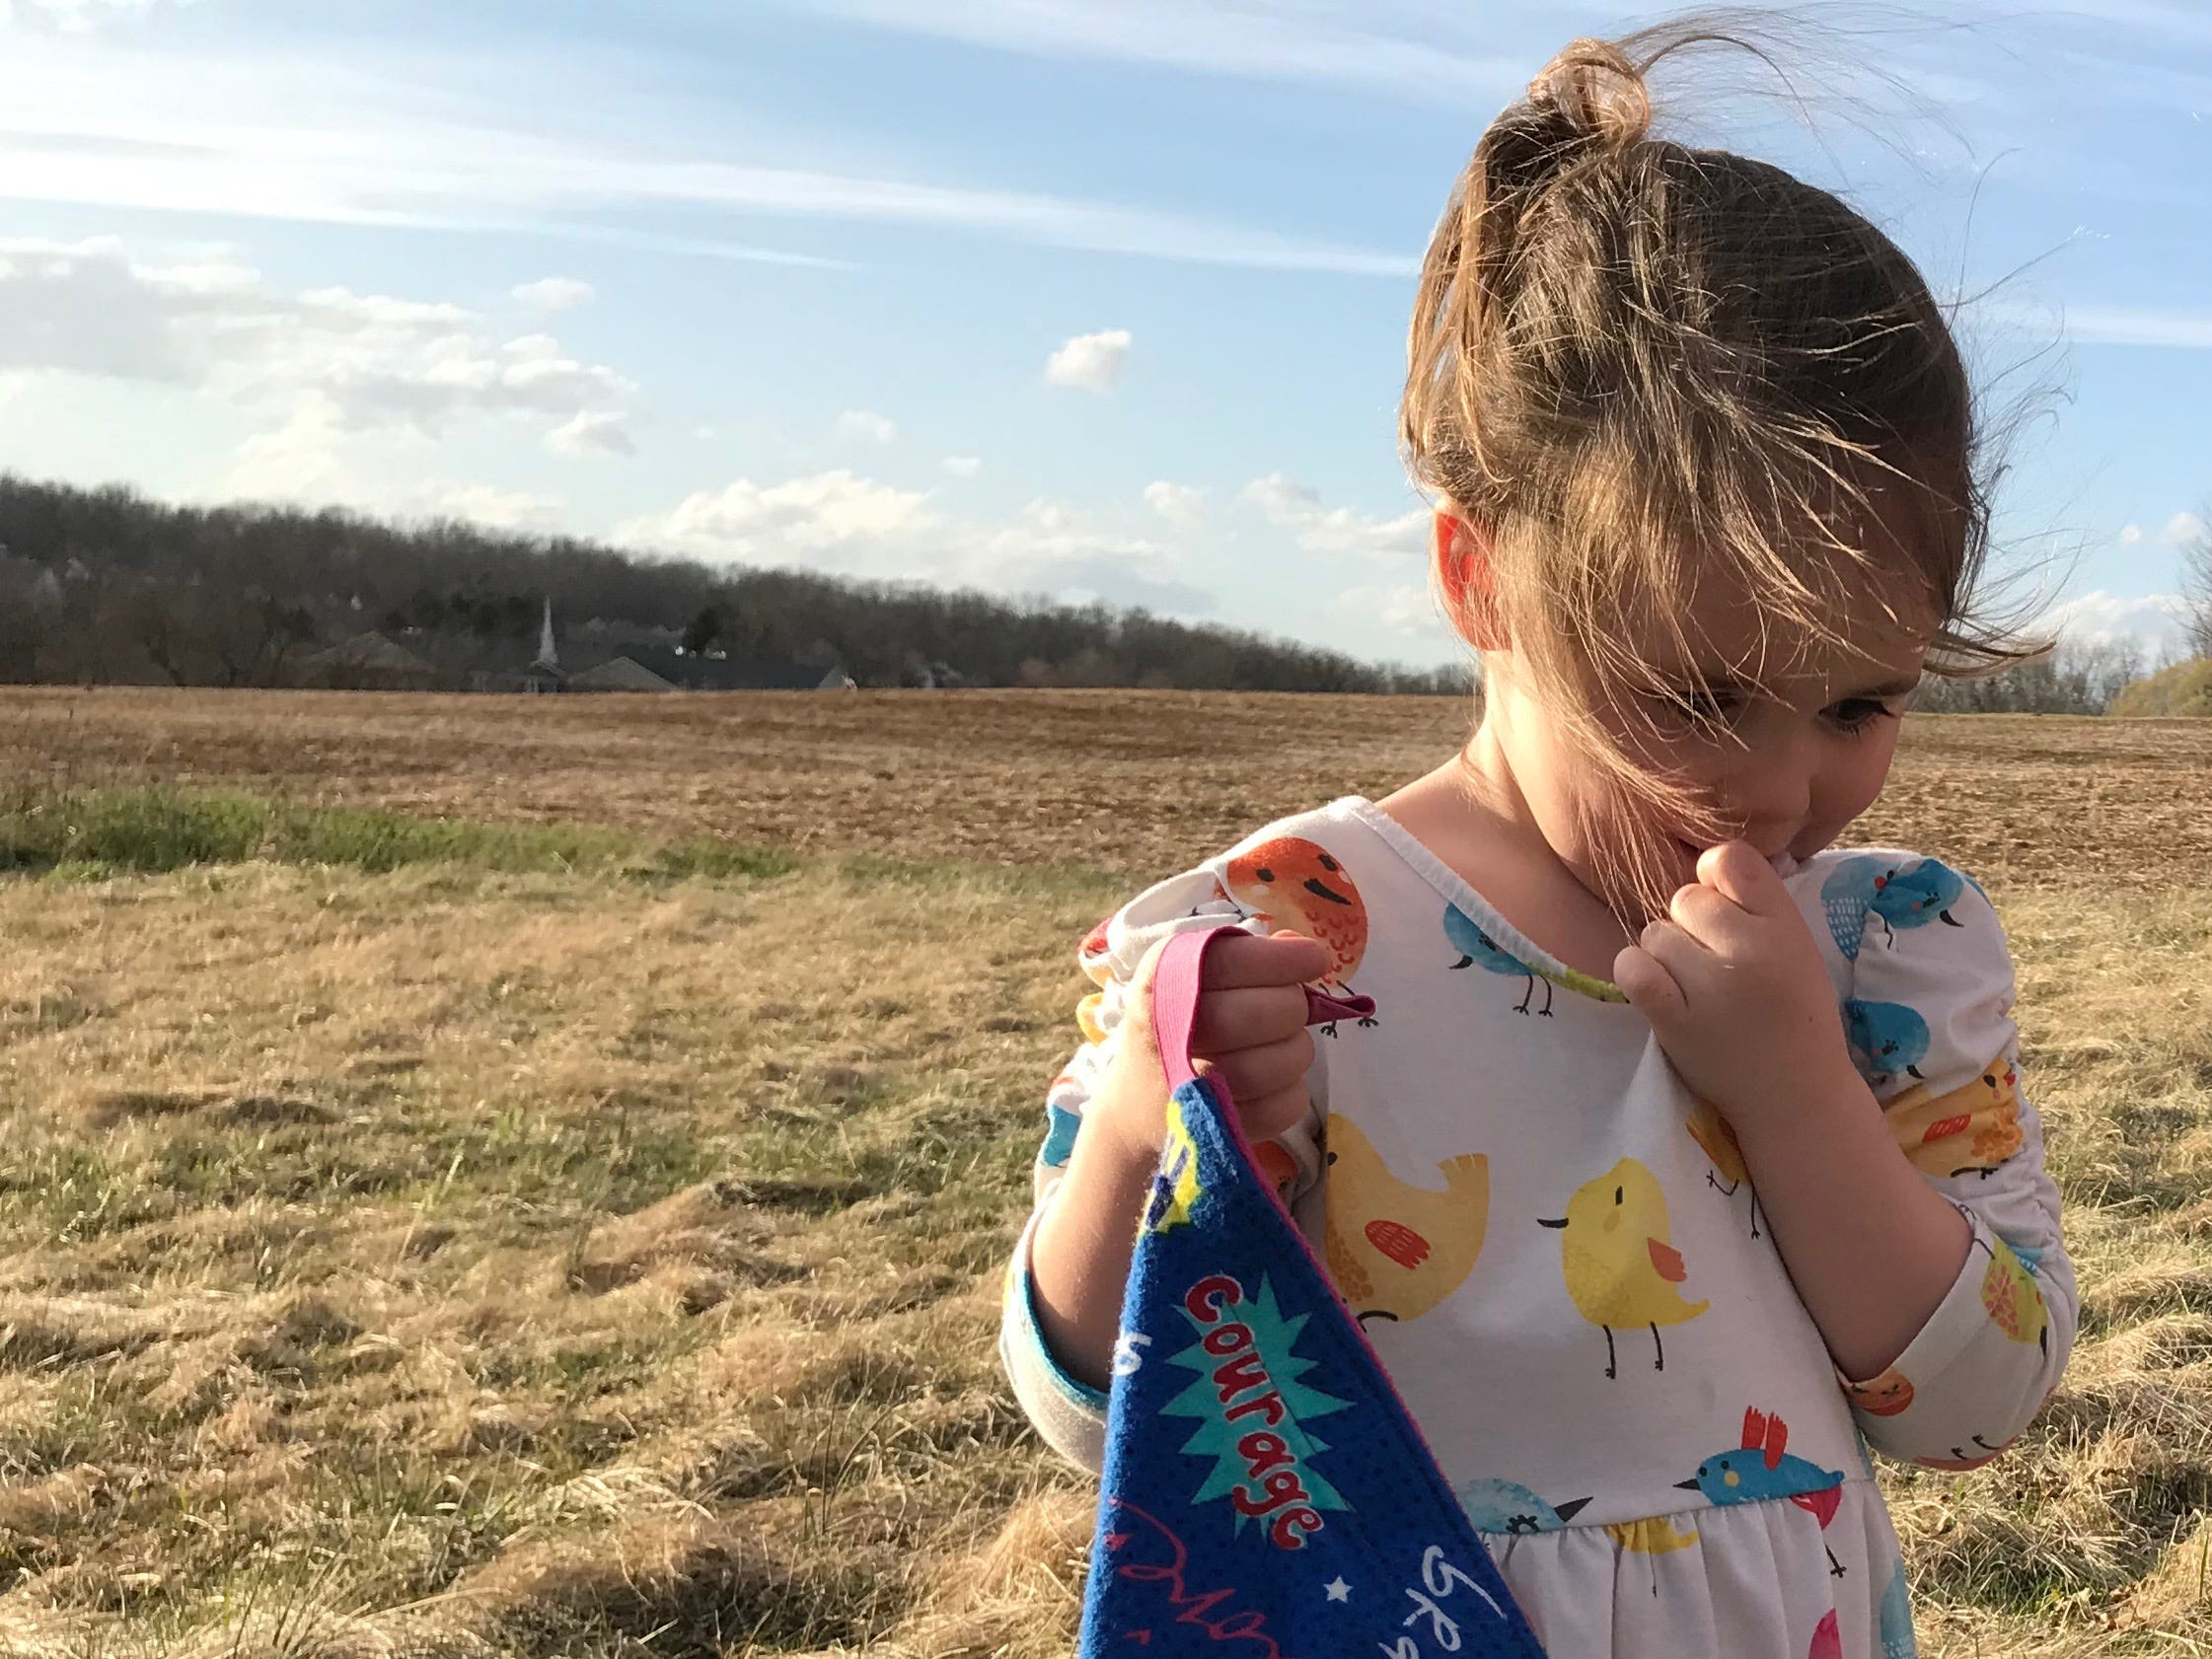 Rebecca Bussey, 3, holds her superhero cape while playing in her backyard in Ladd, Virginia, on Friday, March 15, 2019. An organization called Tiny Superheroes makes capes for kids with chronic diseases. Bussey has Systemic Juvenile Idiopathic Arthritis.